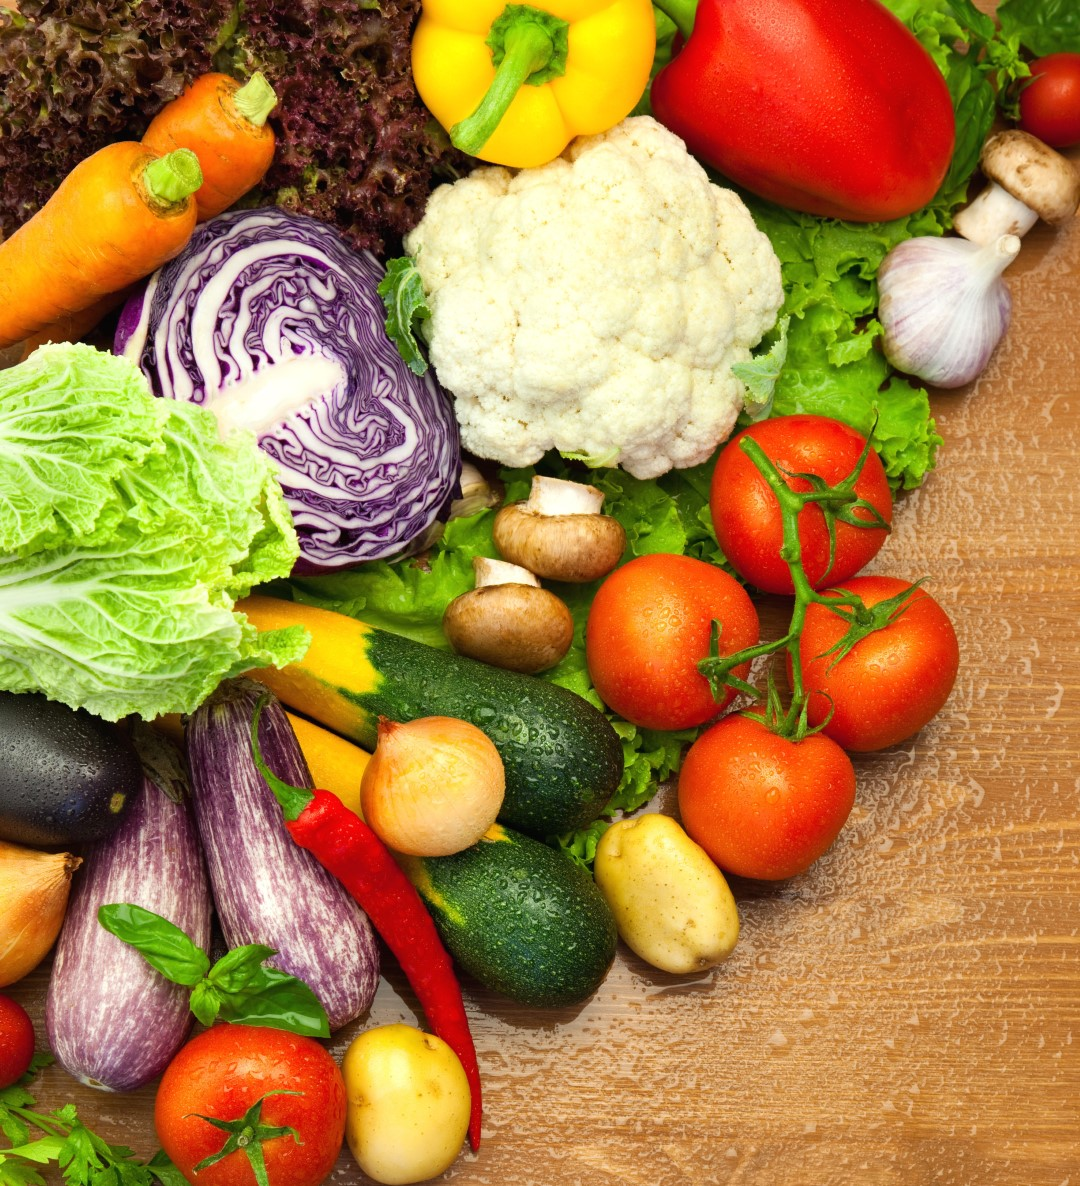 Veggies for a healthy and glowing skin